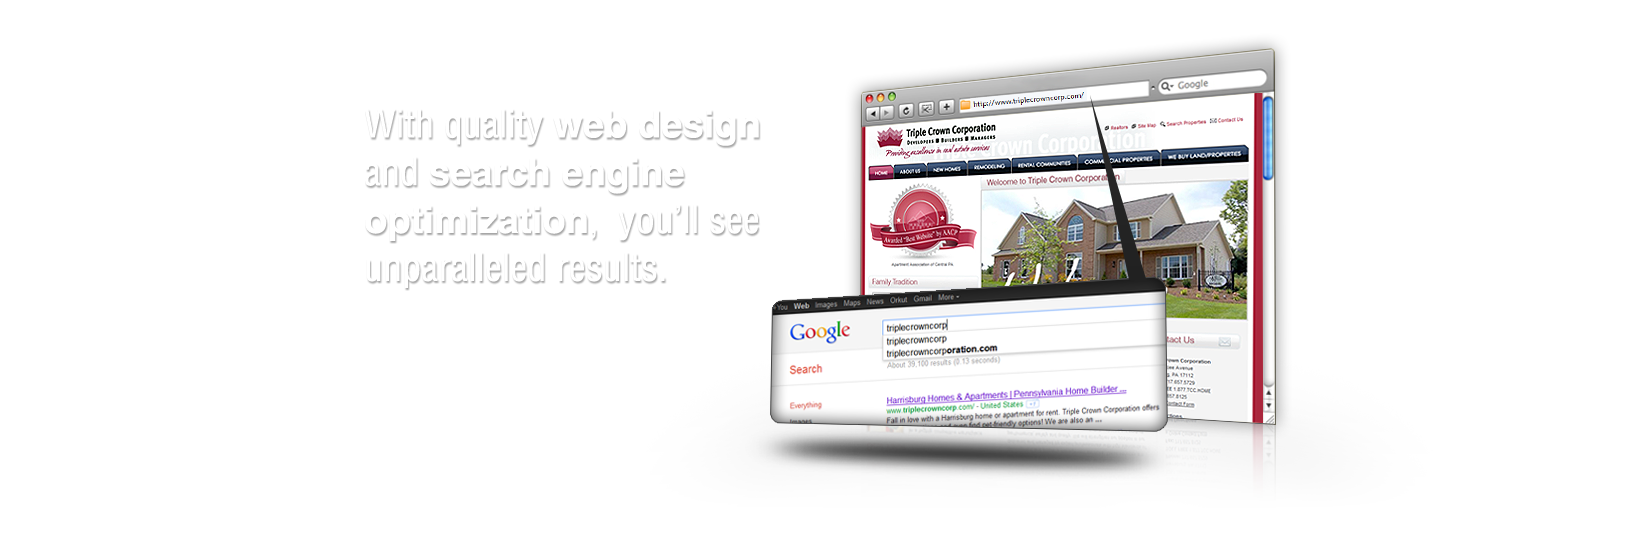 Quality Web Design & Search Engine Optimization